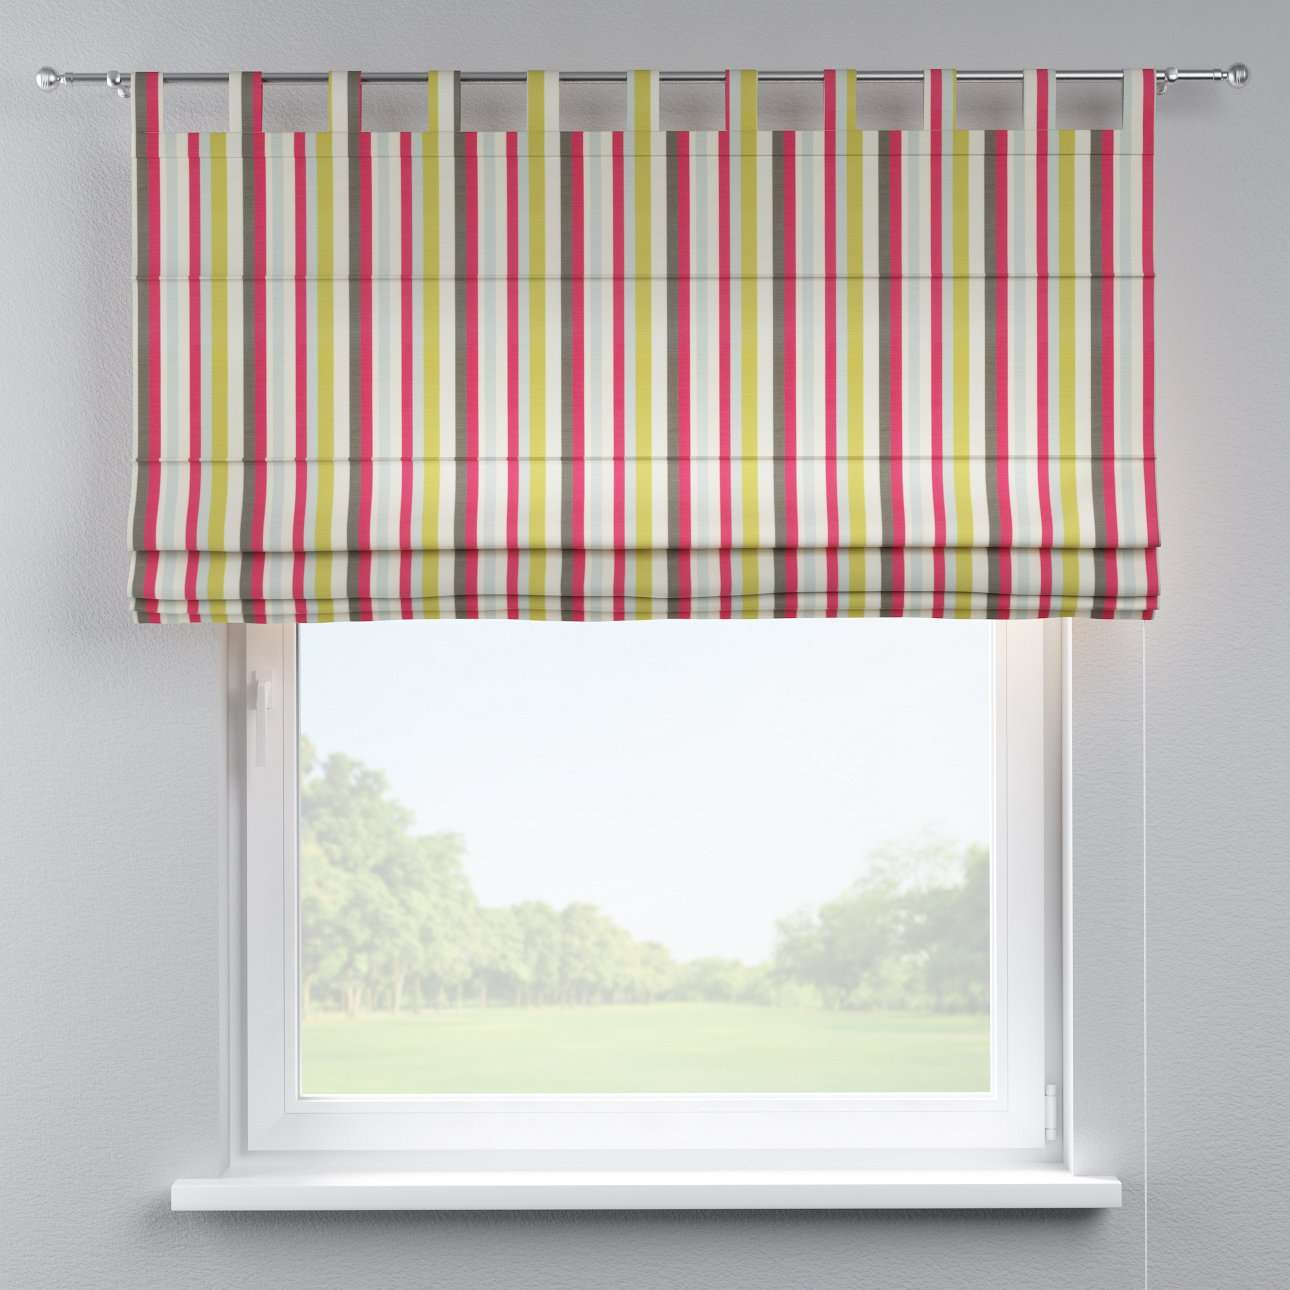 Verona tab top roman blind in collection Flowers, fabric: 140-81